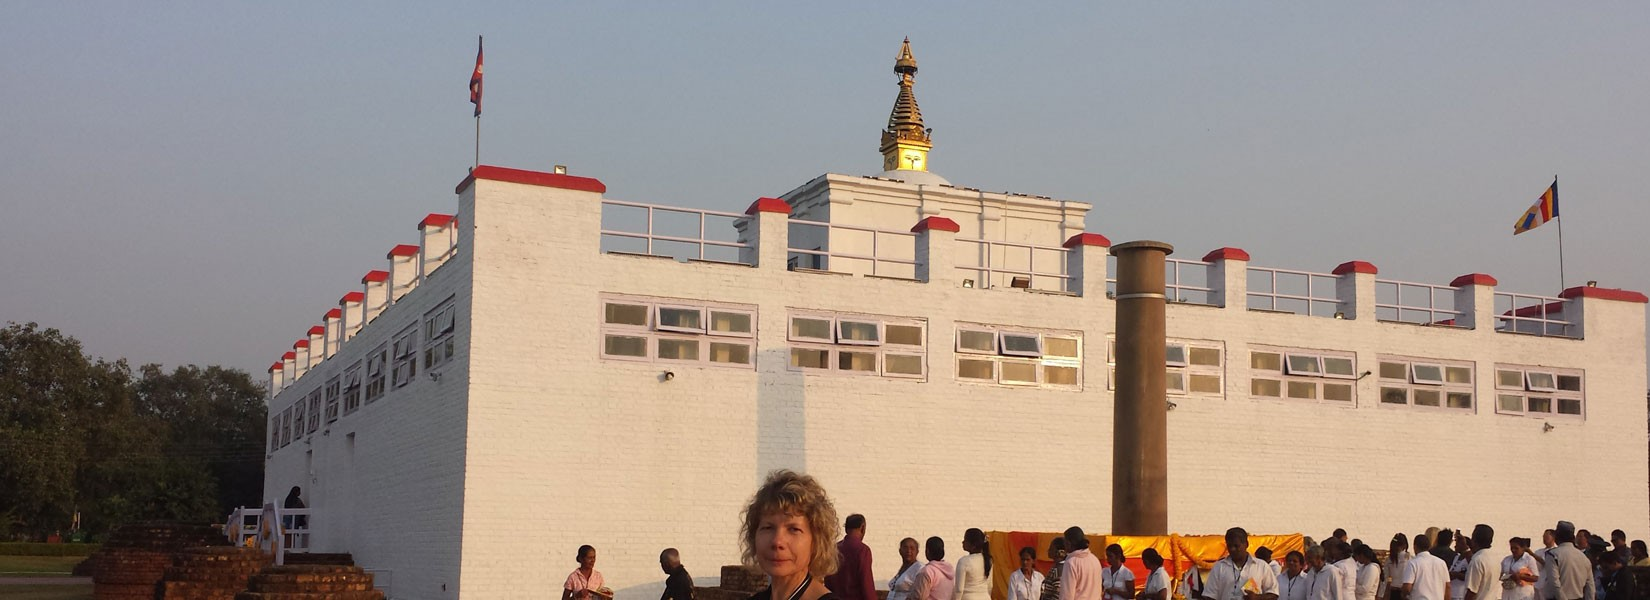 Lumbini the birthplace of buddha